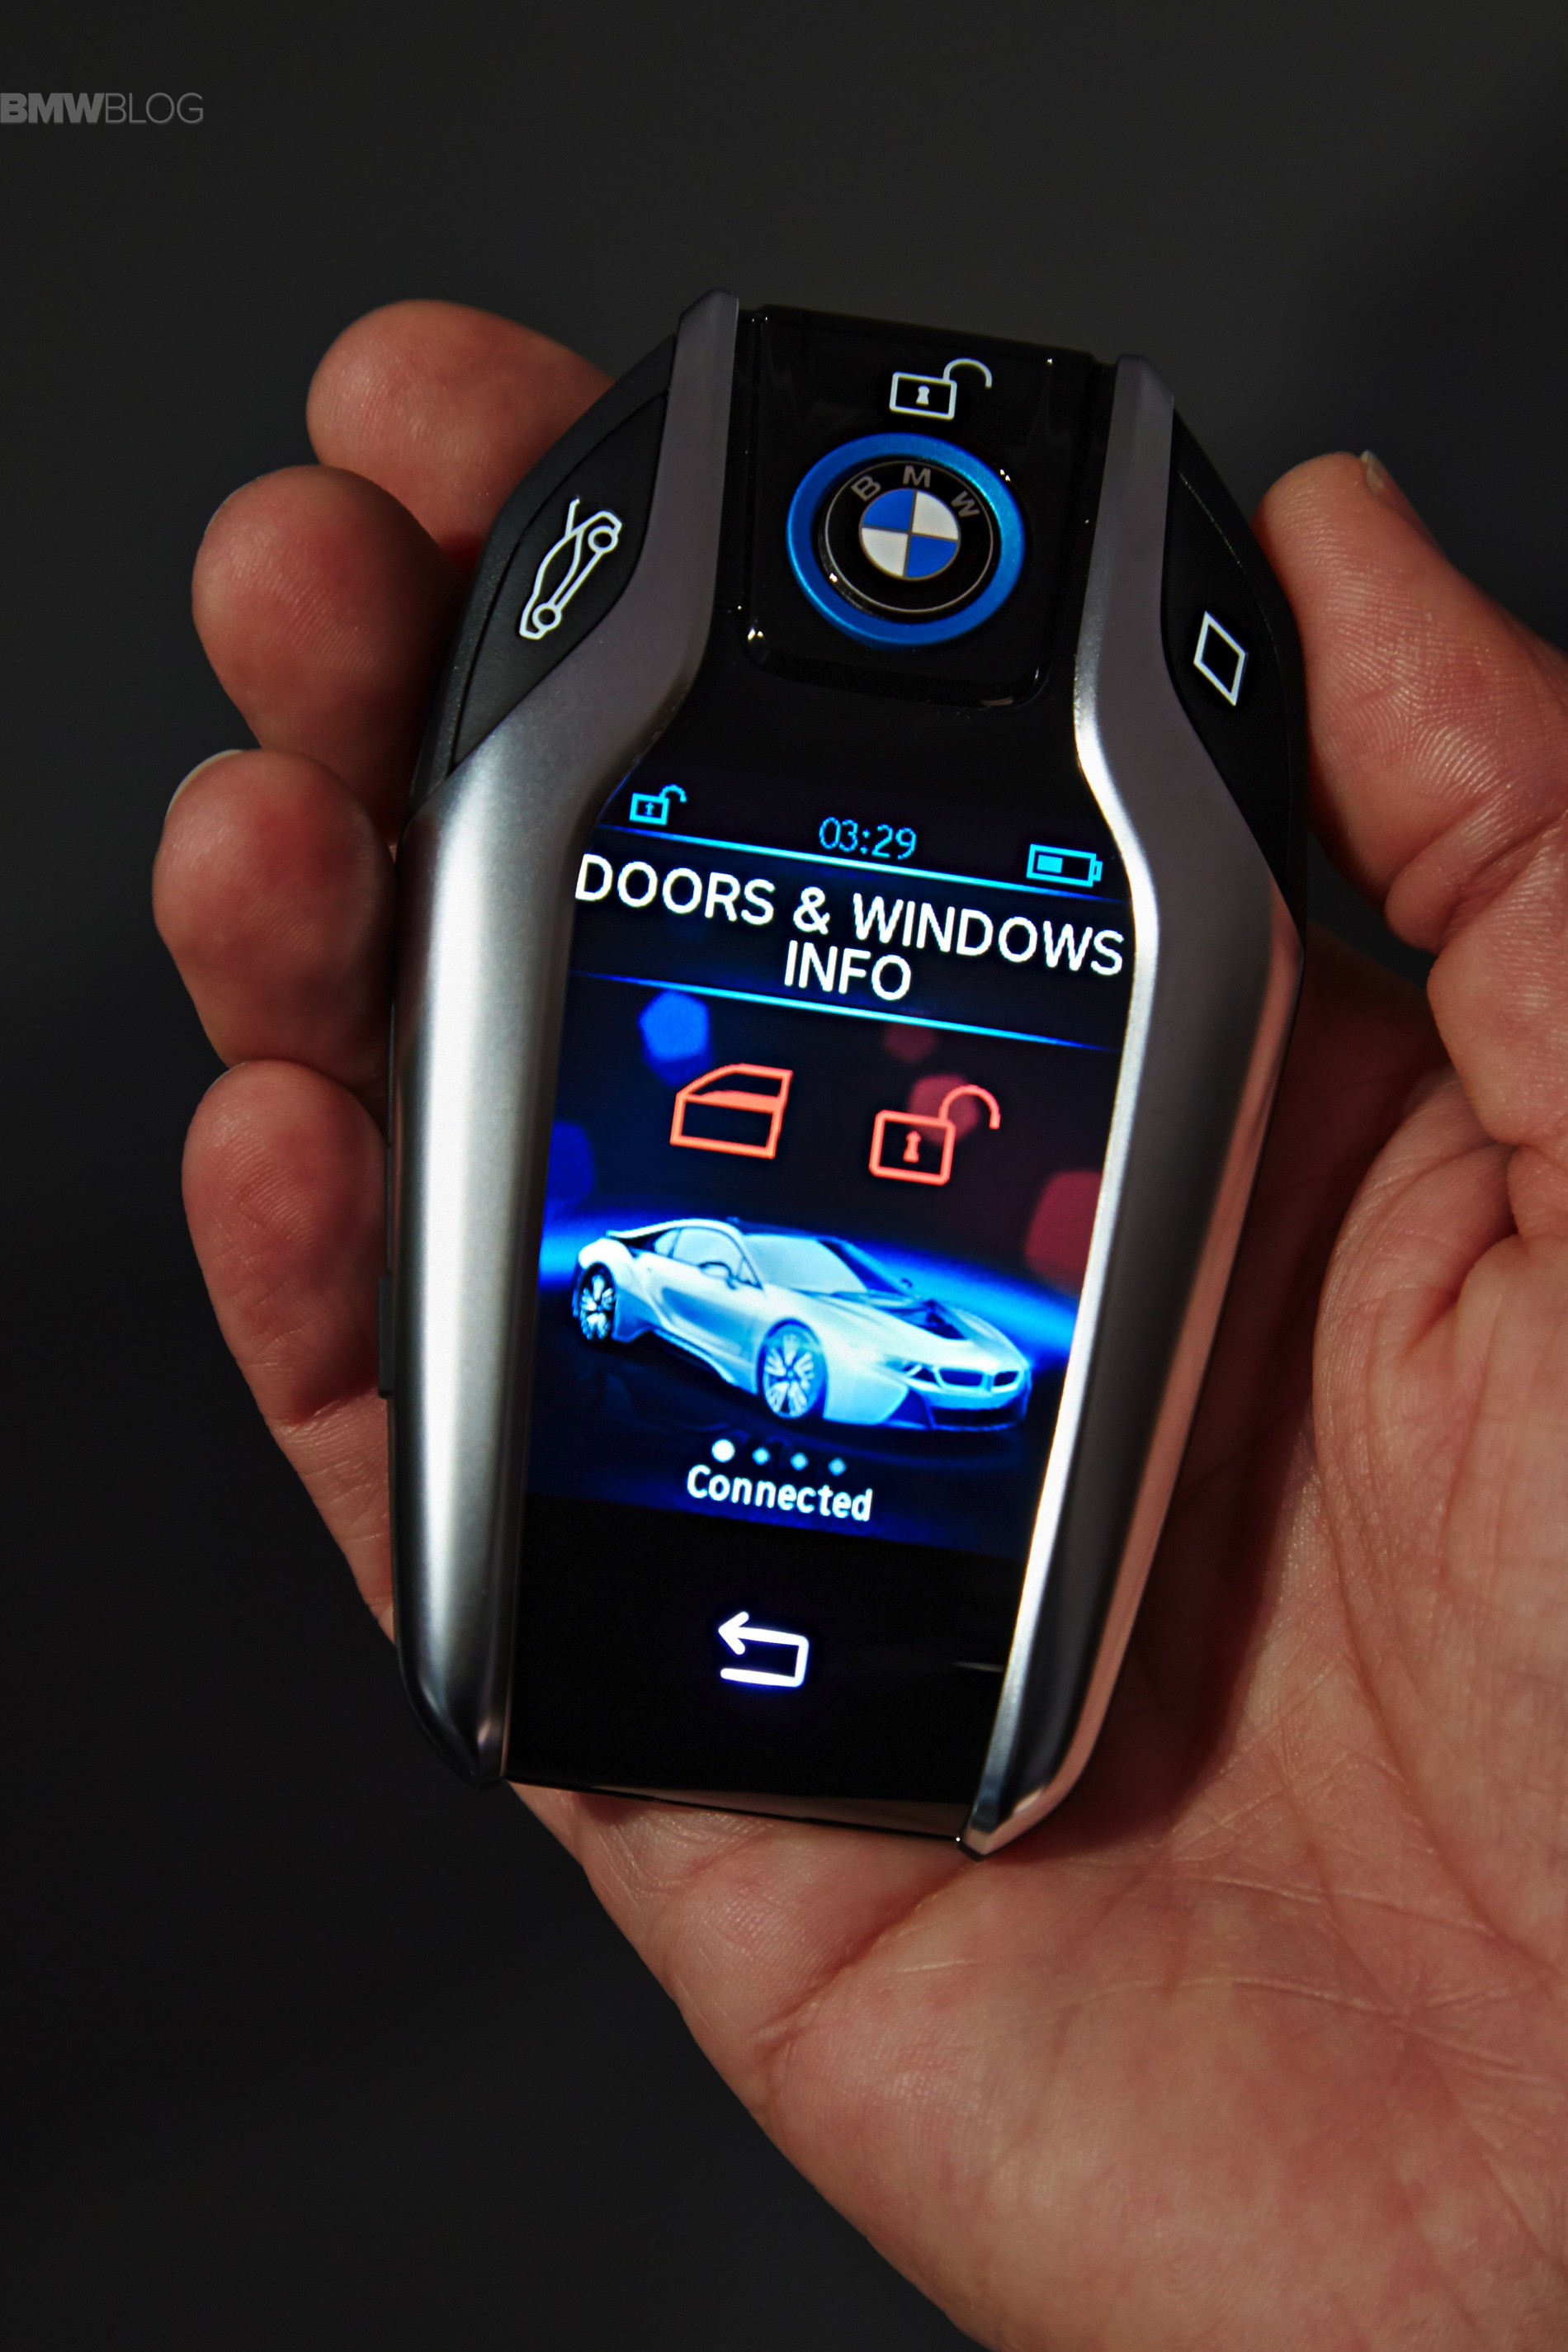 Do We Need A Smart High Tech Keyfob